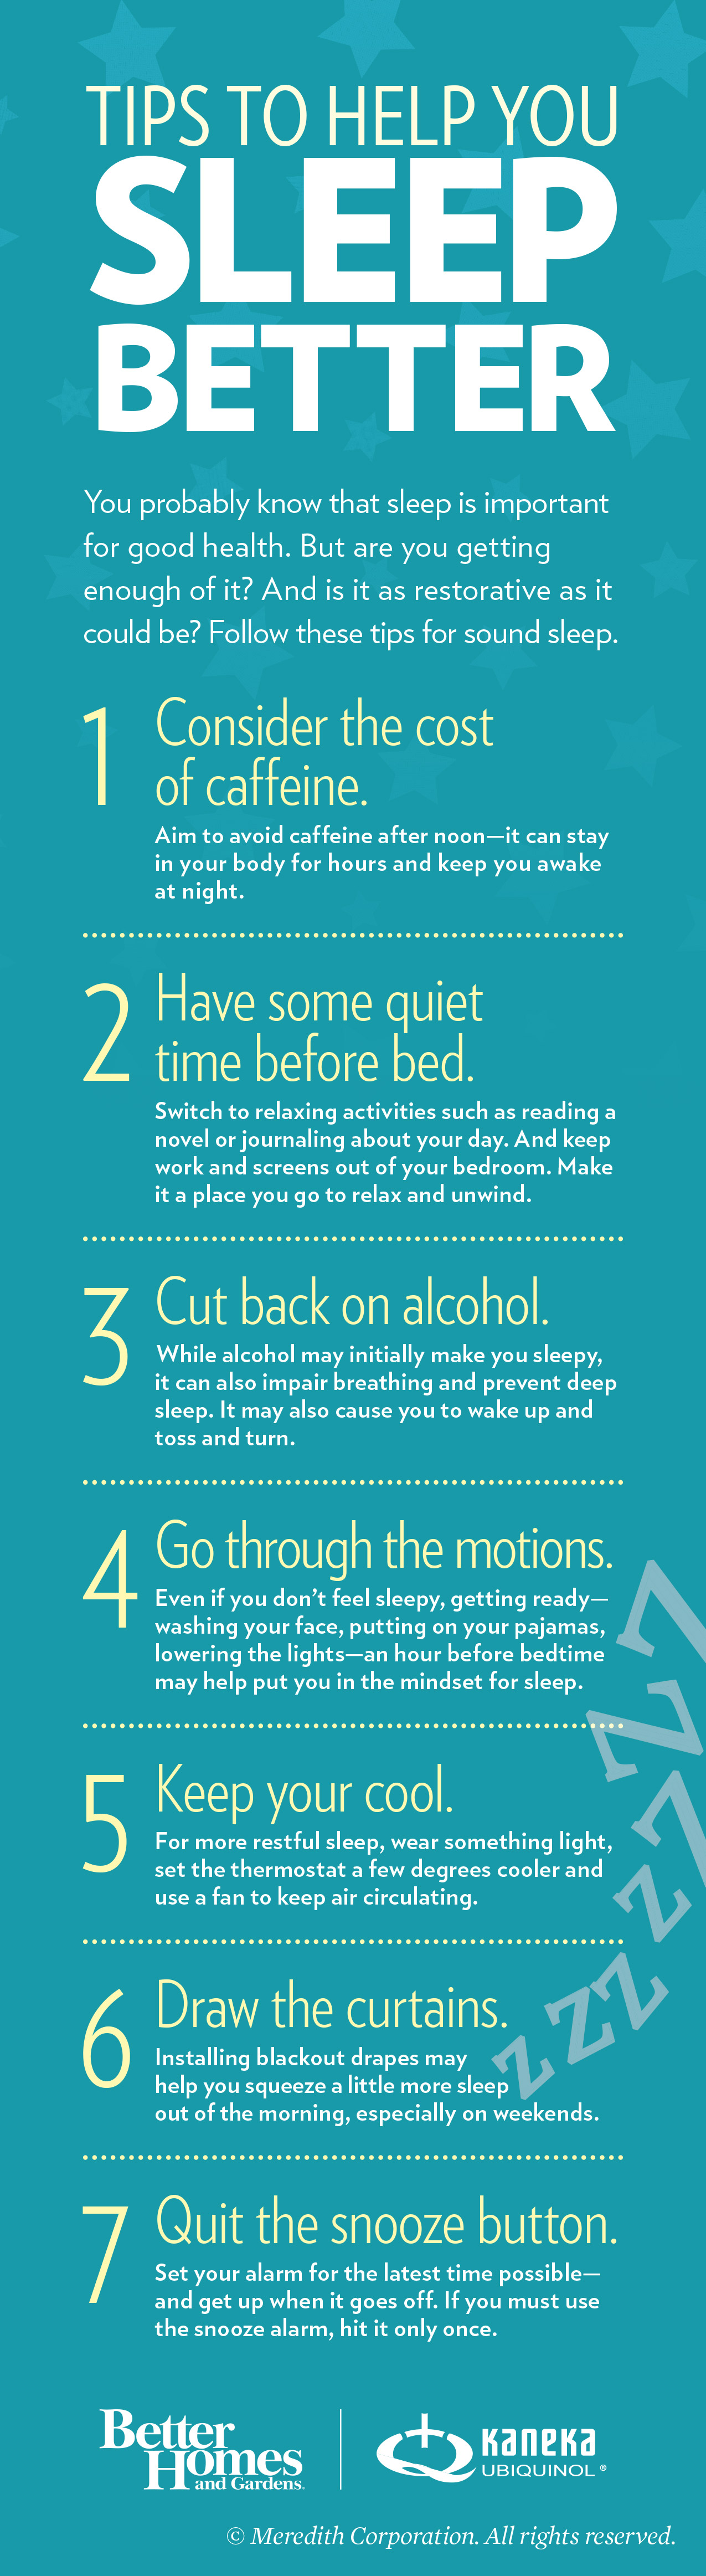 seven tips for better sleep infographic